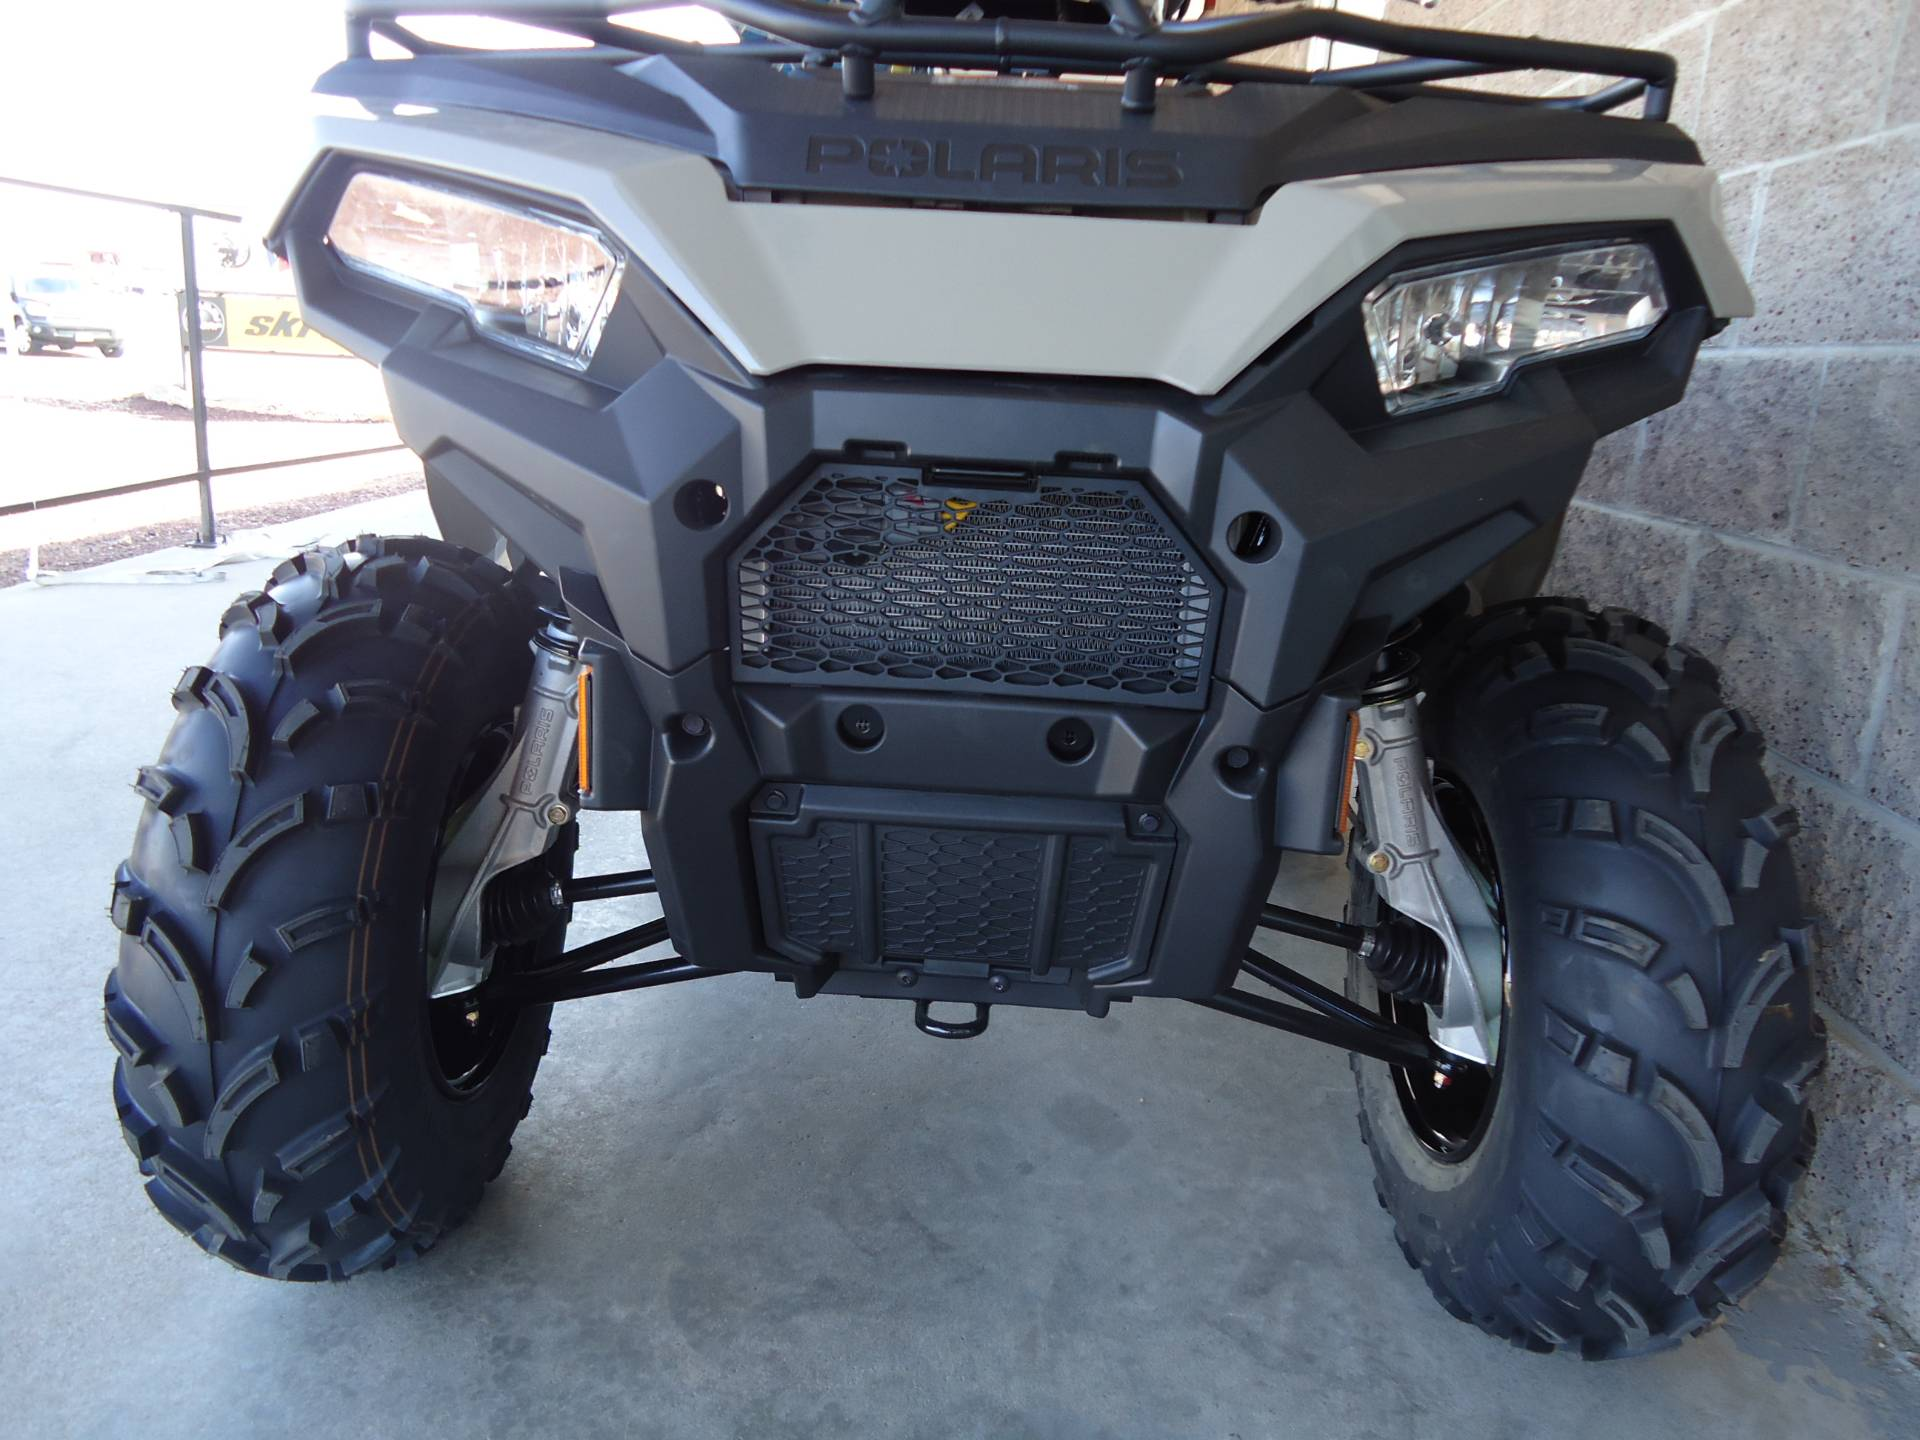 2021 Polaris Sportsman 570 in Denver, Colorado - Photo 6